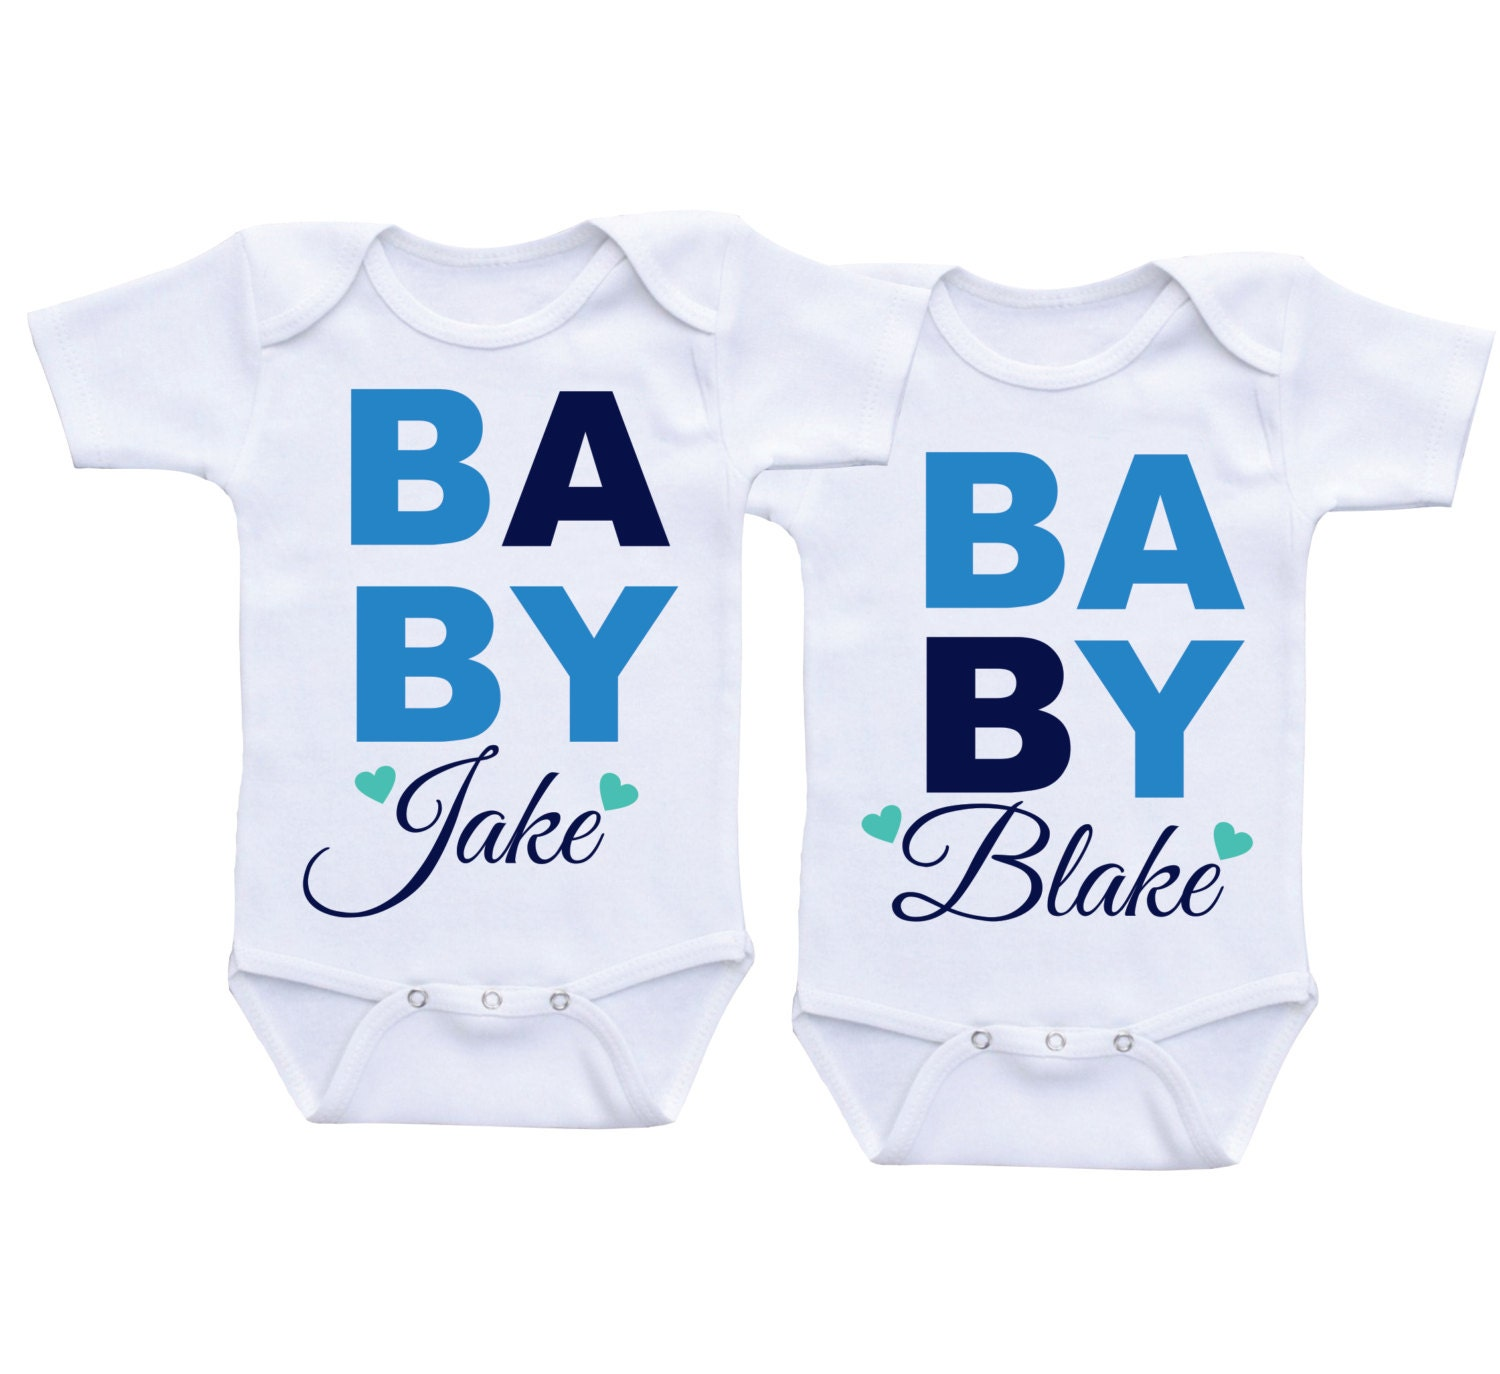 Cute Twin Onesie for baby boysTwins Onesie Clothing for